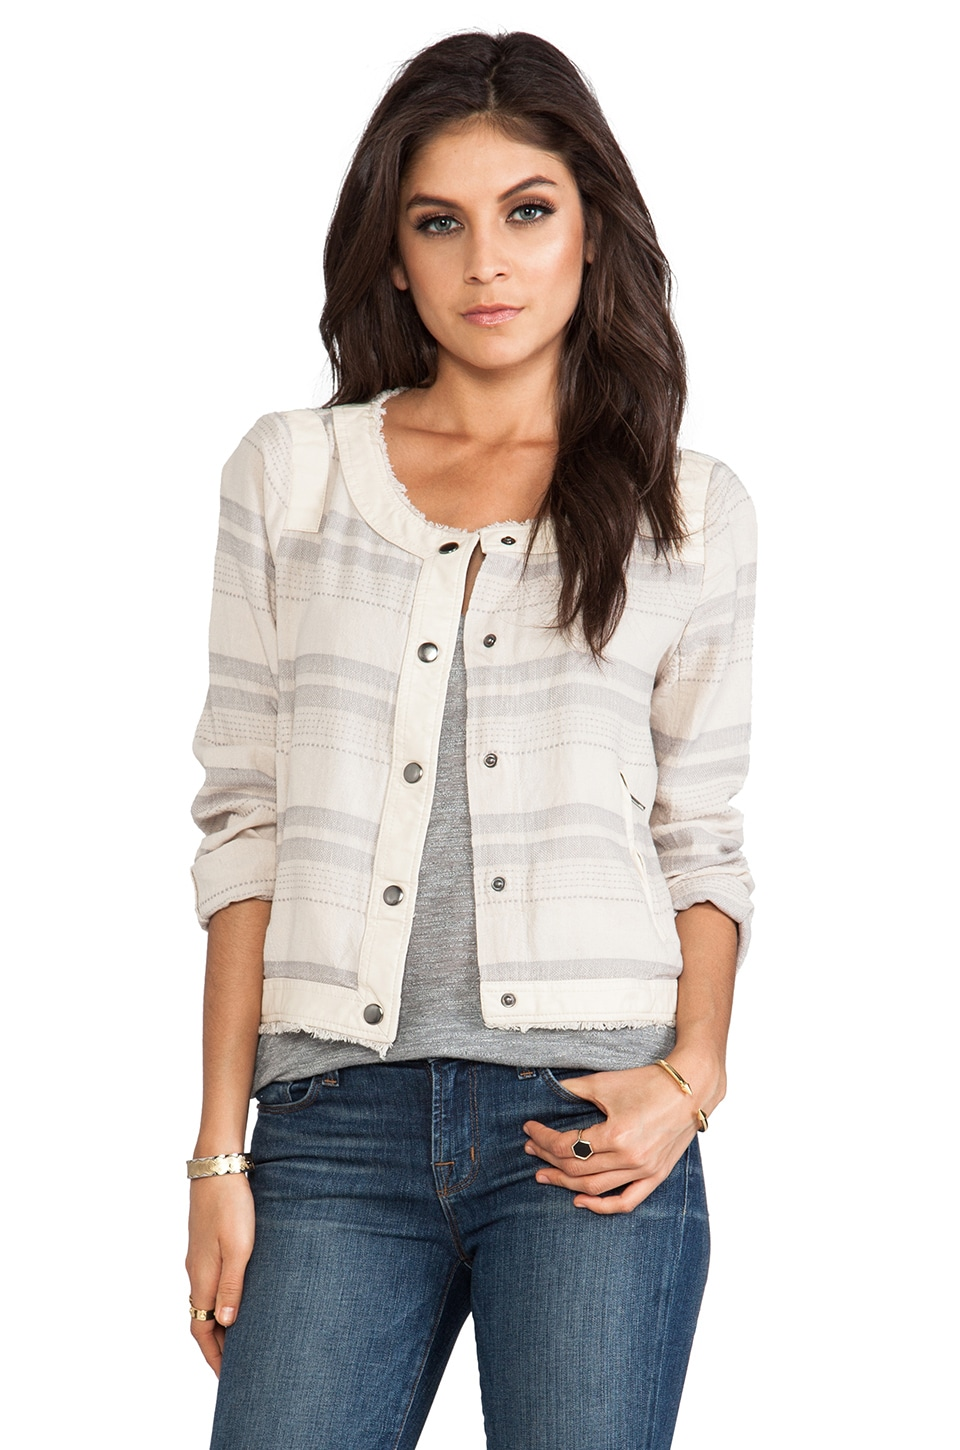 BB Dakota Catorie Striped Jacket in White Cap